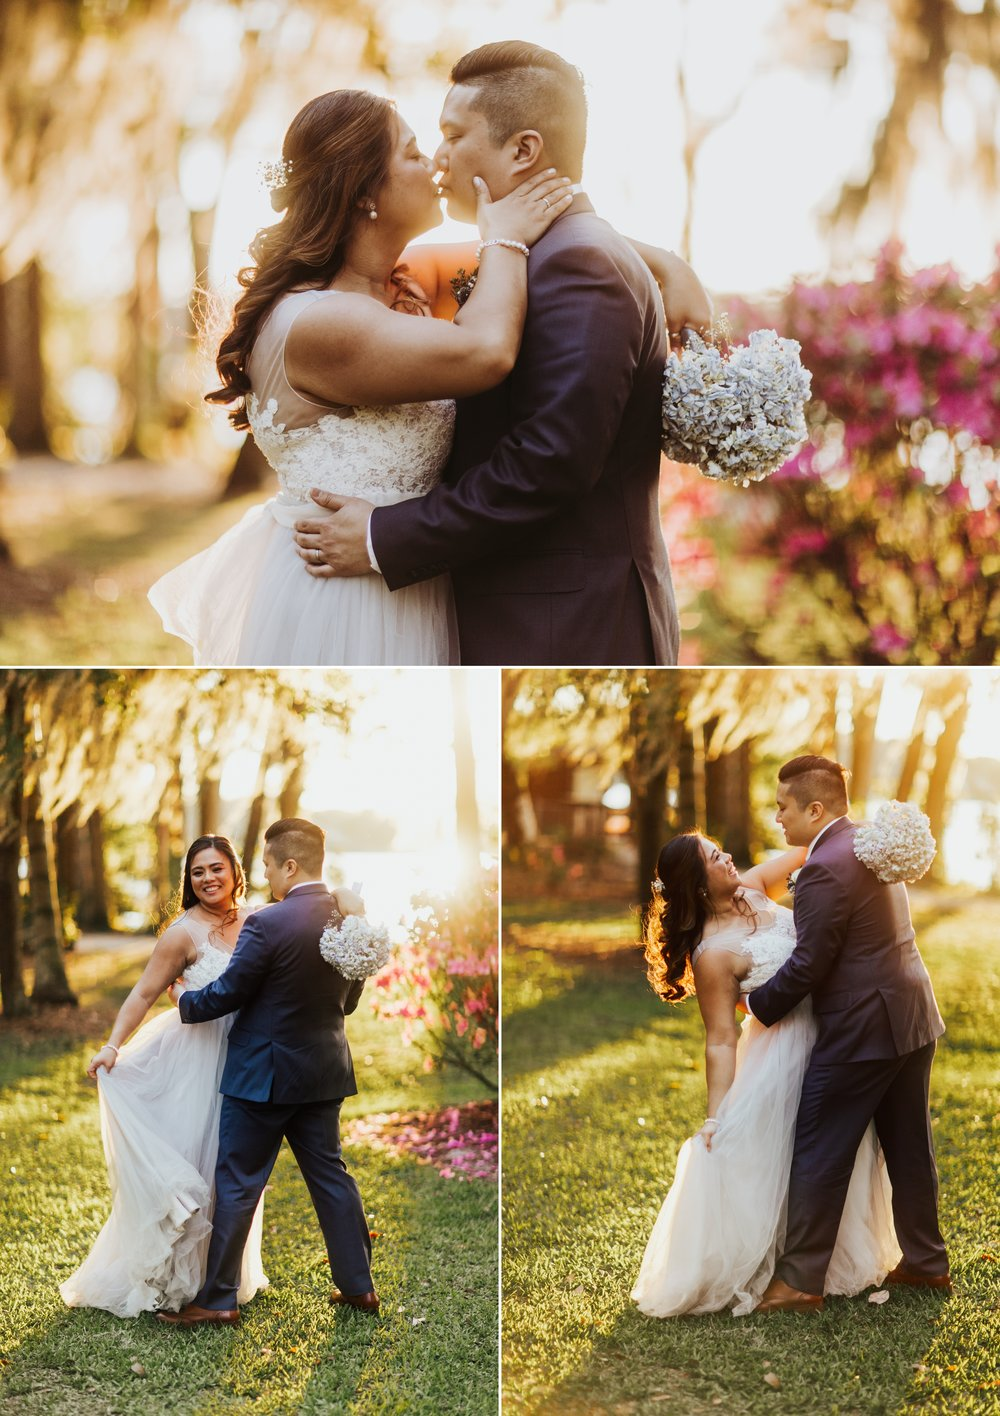 Romantic Leu Gardens Wedding Pictures - Winter Park Wedding Photographer Shaina DeCiryan- Effie+Phillip14.jpg